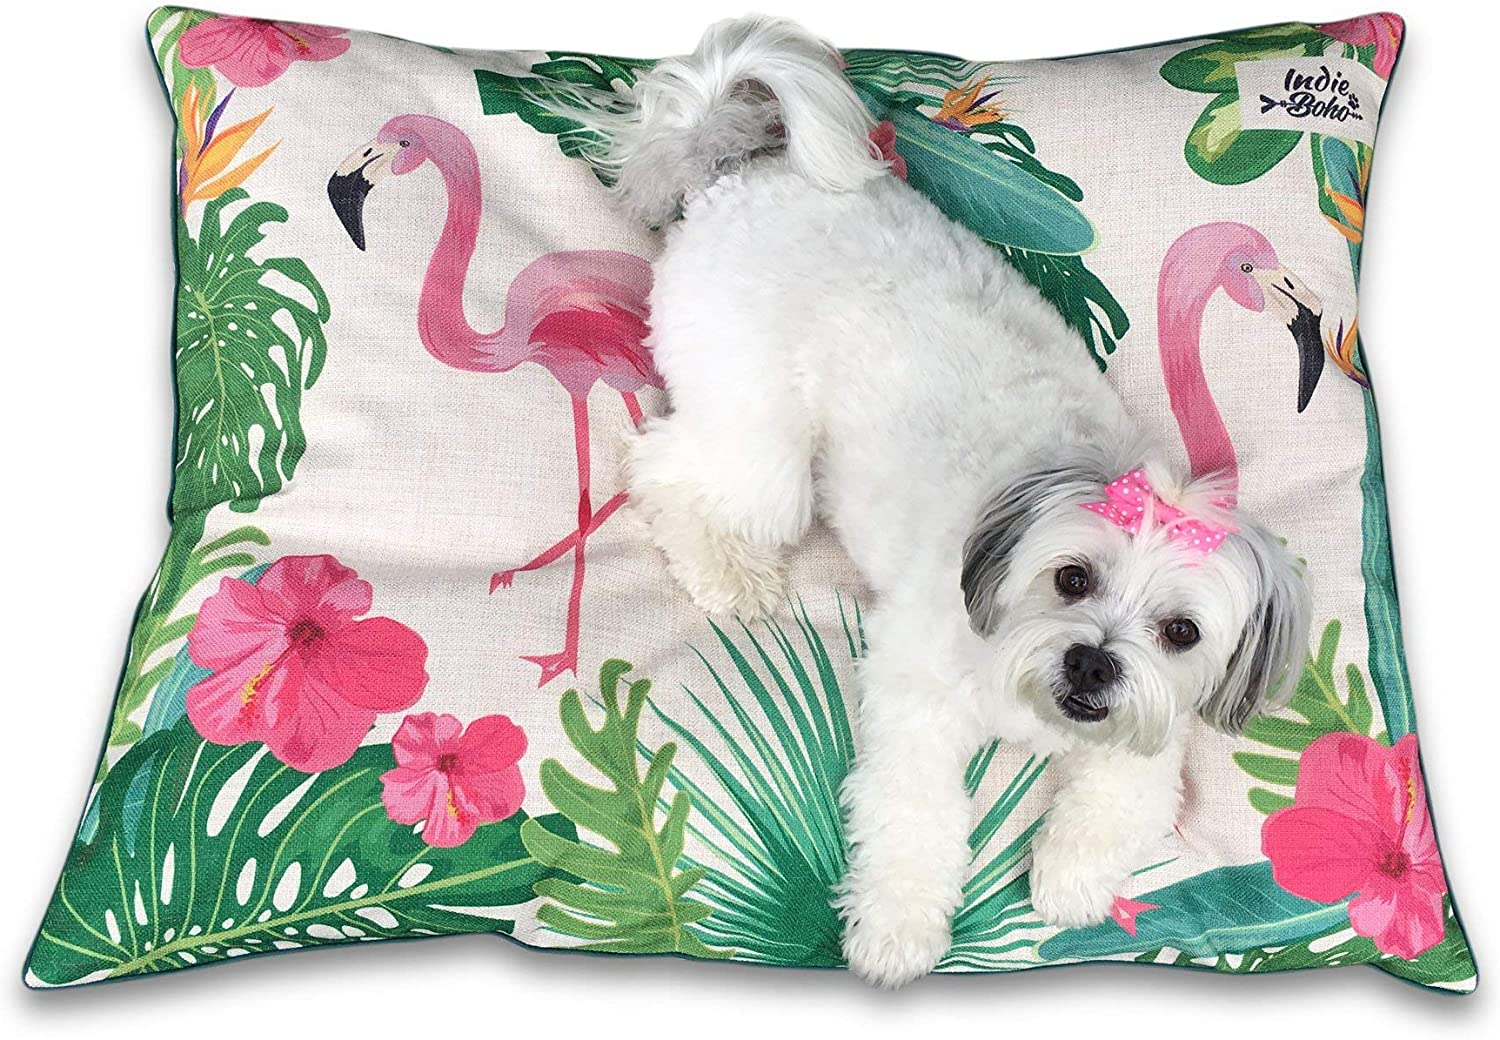 Indie Boho Pets Luxury Designer Dog Bed with Removable and Washable Cover in Flamingo Paradise Design – Perfect for Female Dogs